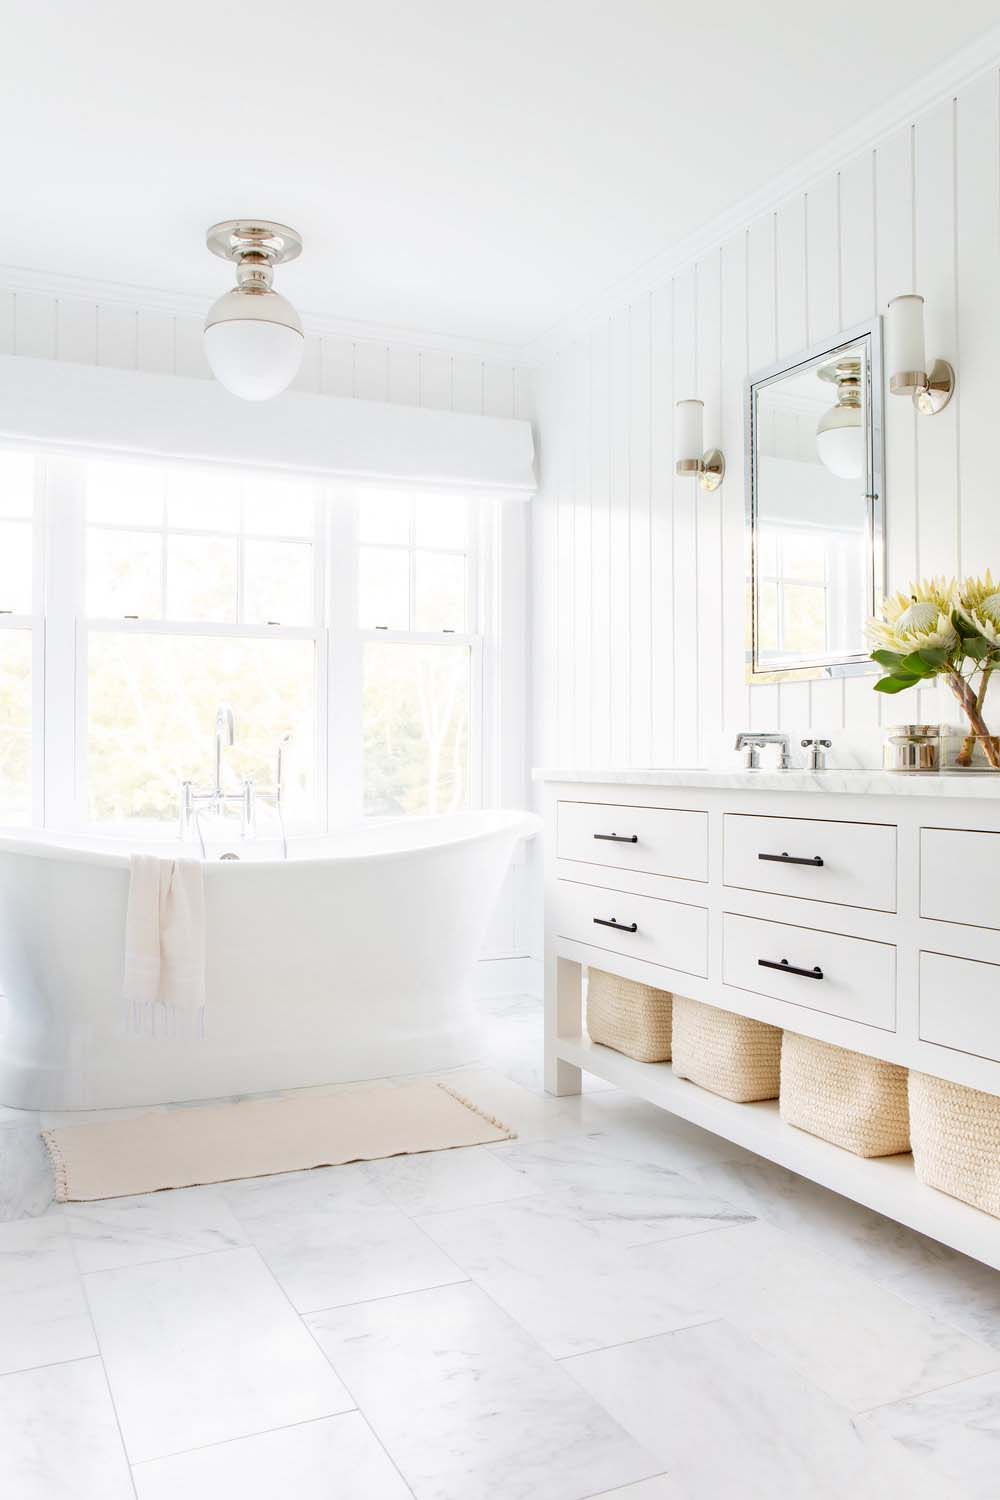 bathroom, white marble floor, white vertical shiplank, white lighting fixture, white wooden cabinet, white marble counter top, white sconces, mirror